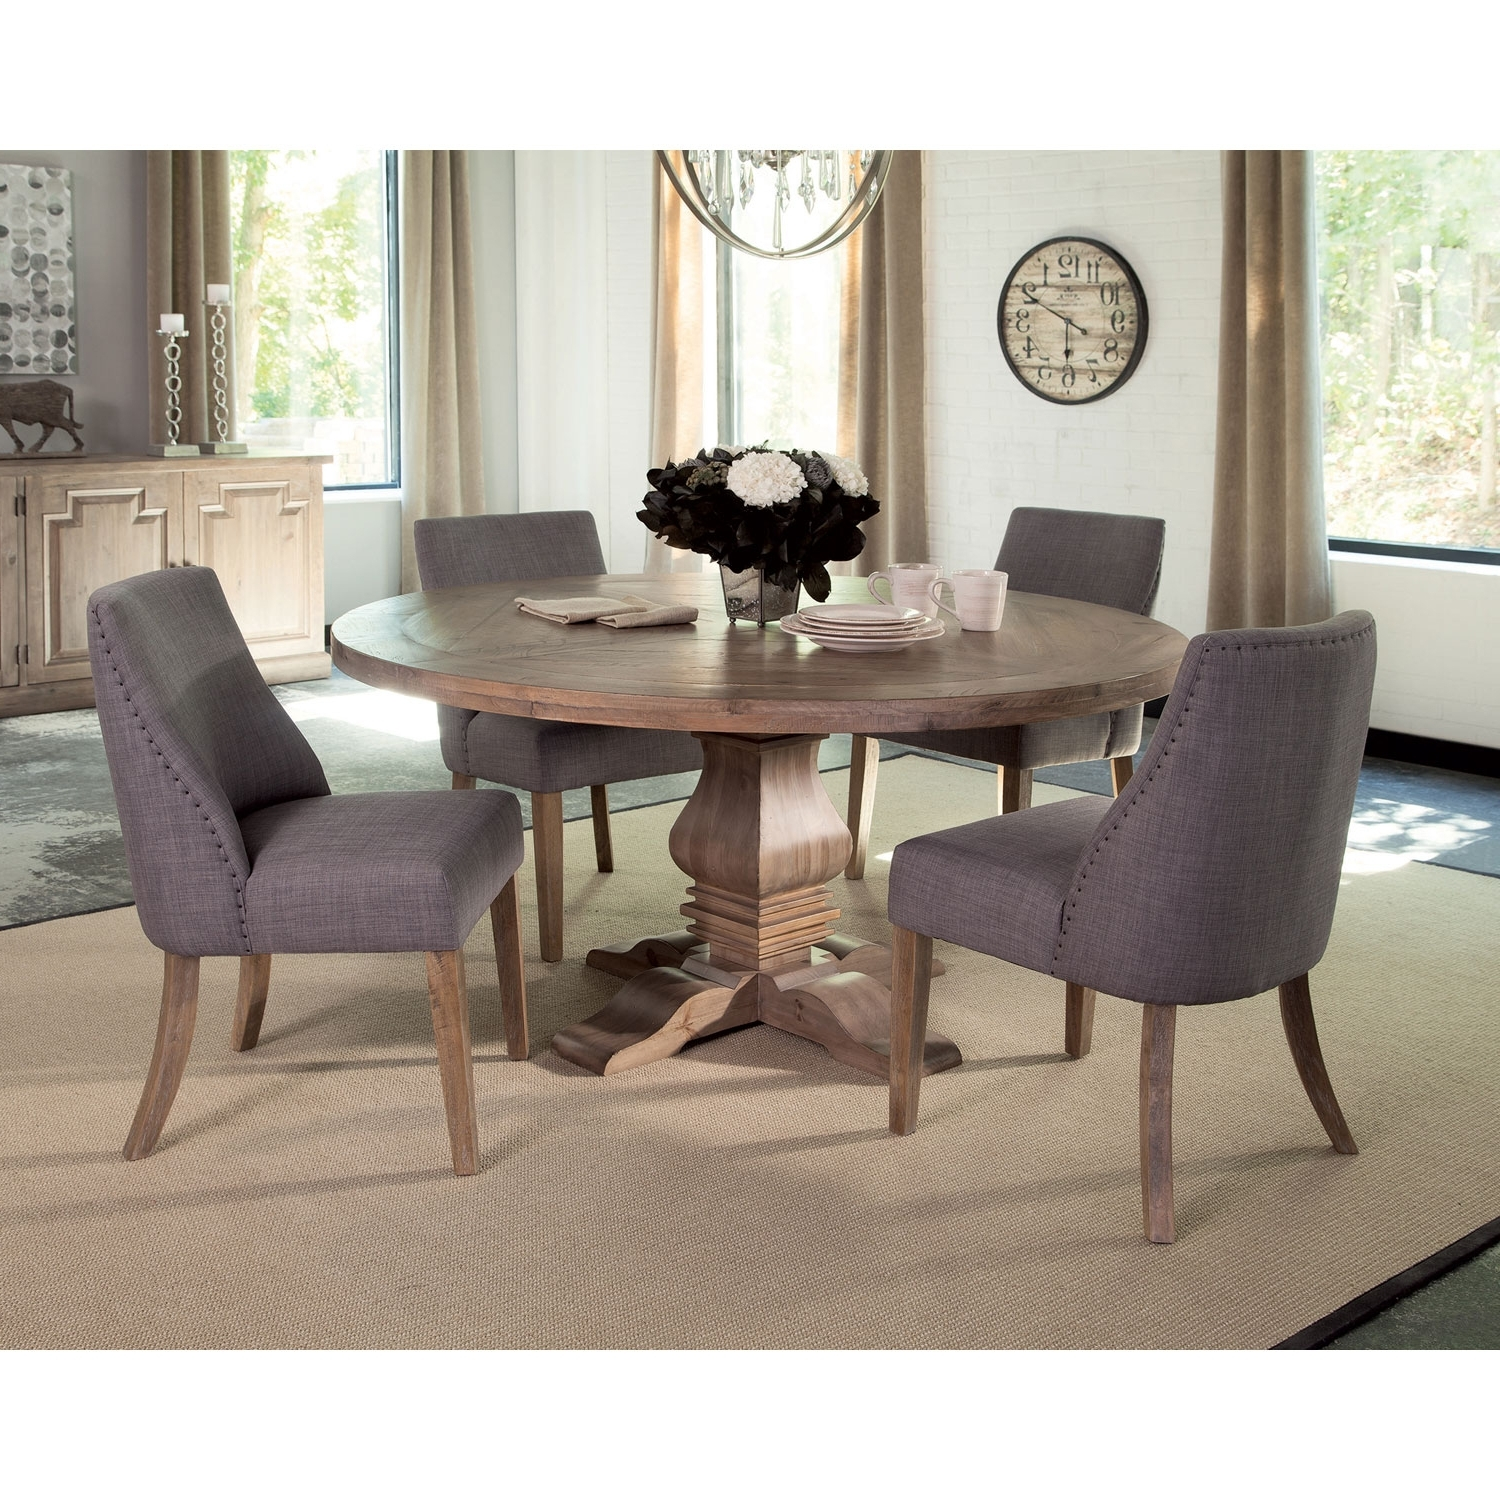 Catchy Circle Kitchen Table In Donny Osmond Home Florence Pine Round Throughout Widely Used Macie Round Dining Tables (View 18 of 25)